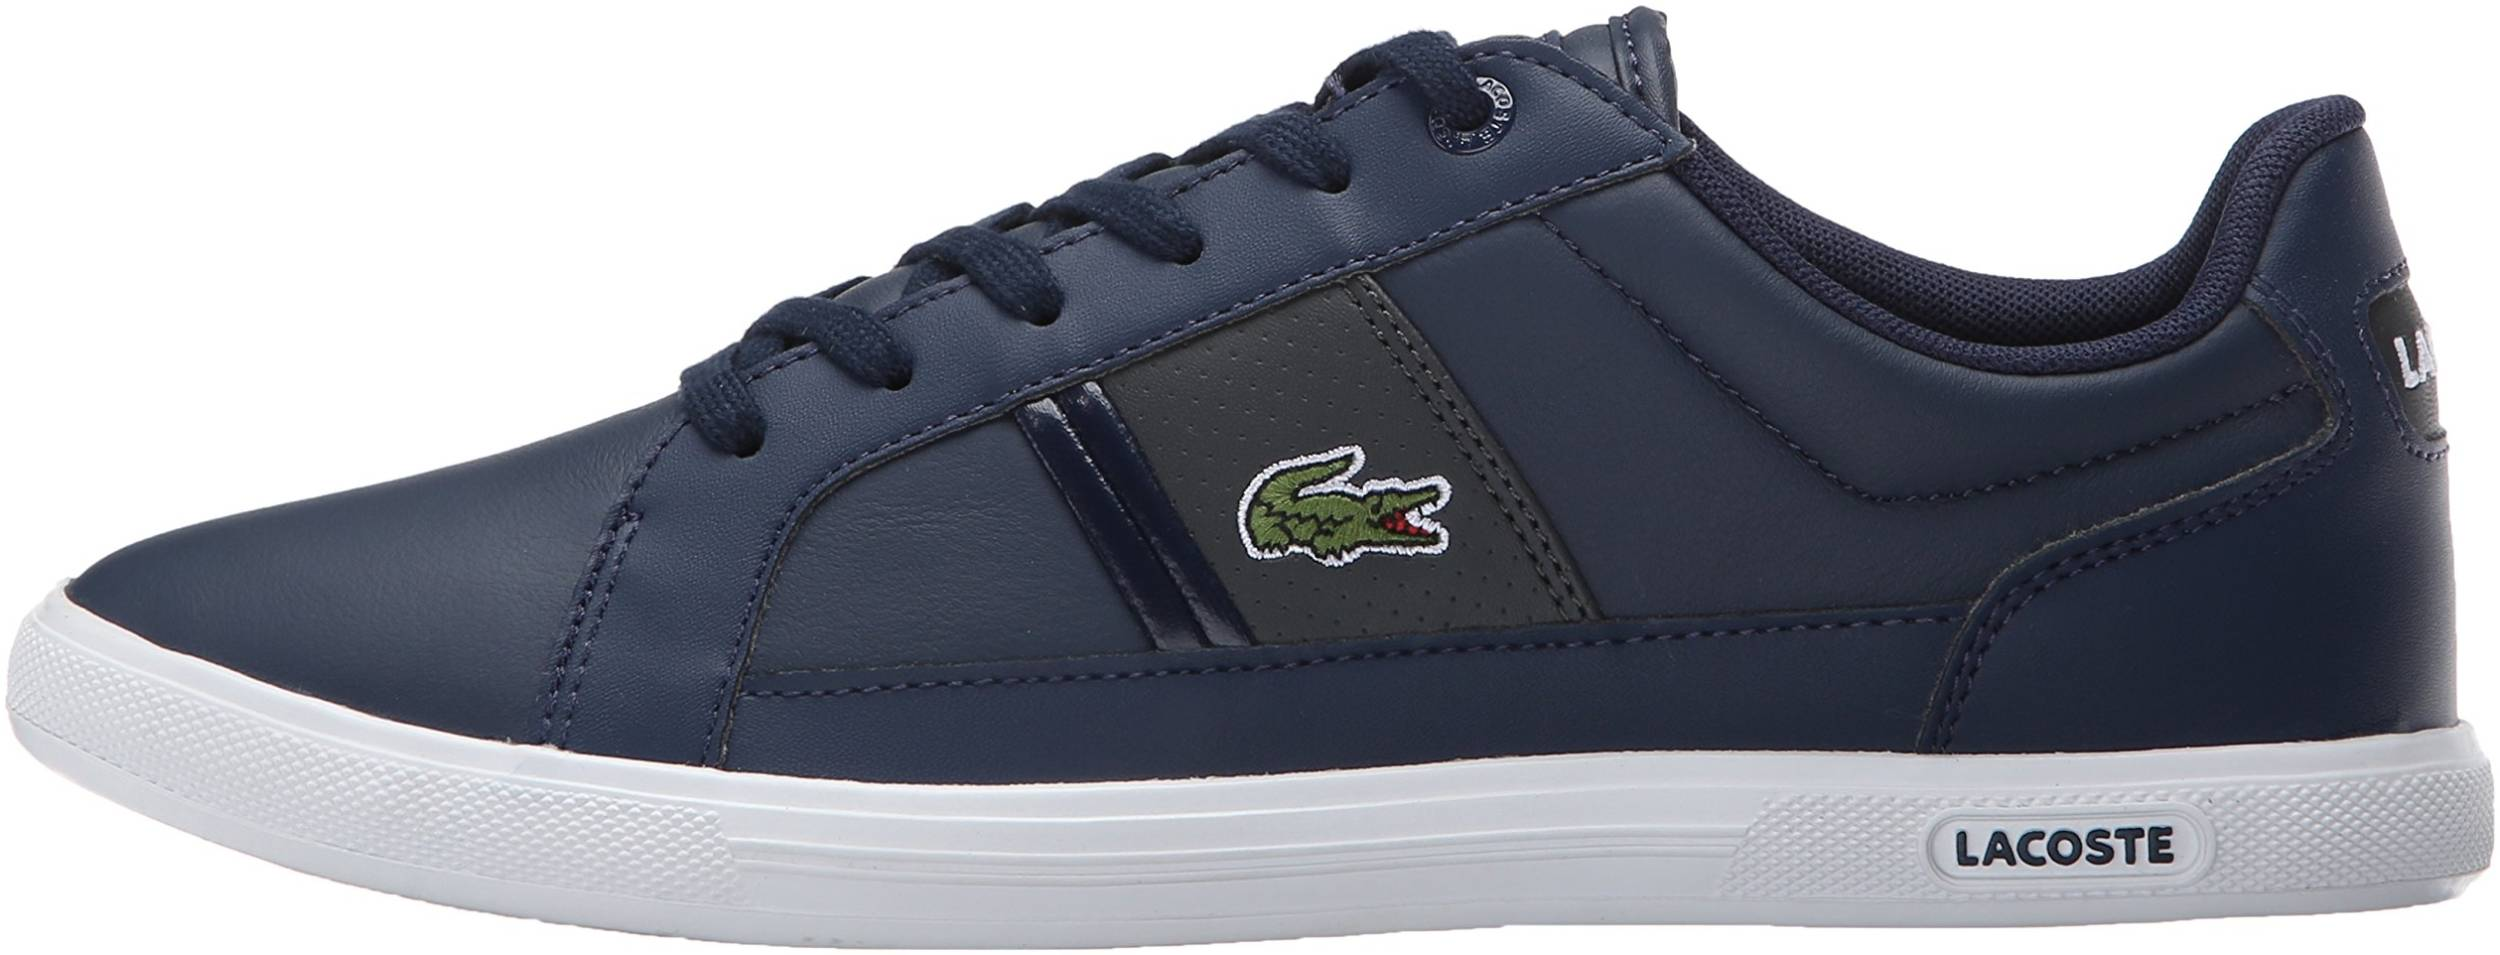 Only $49 + Review of Lacoste Europa